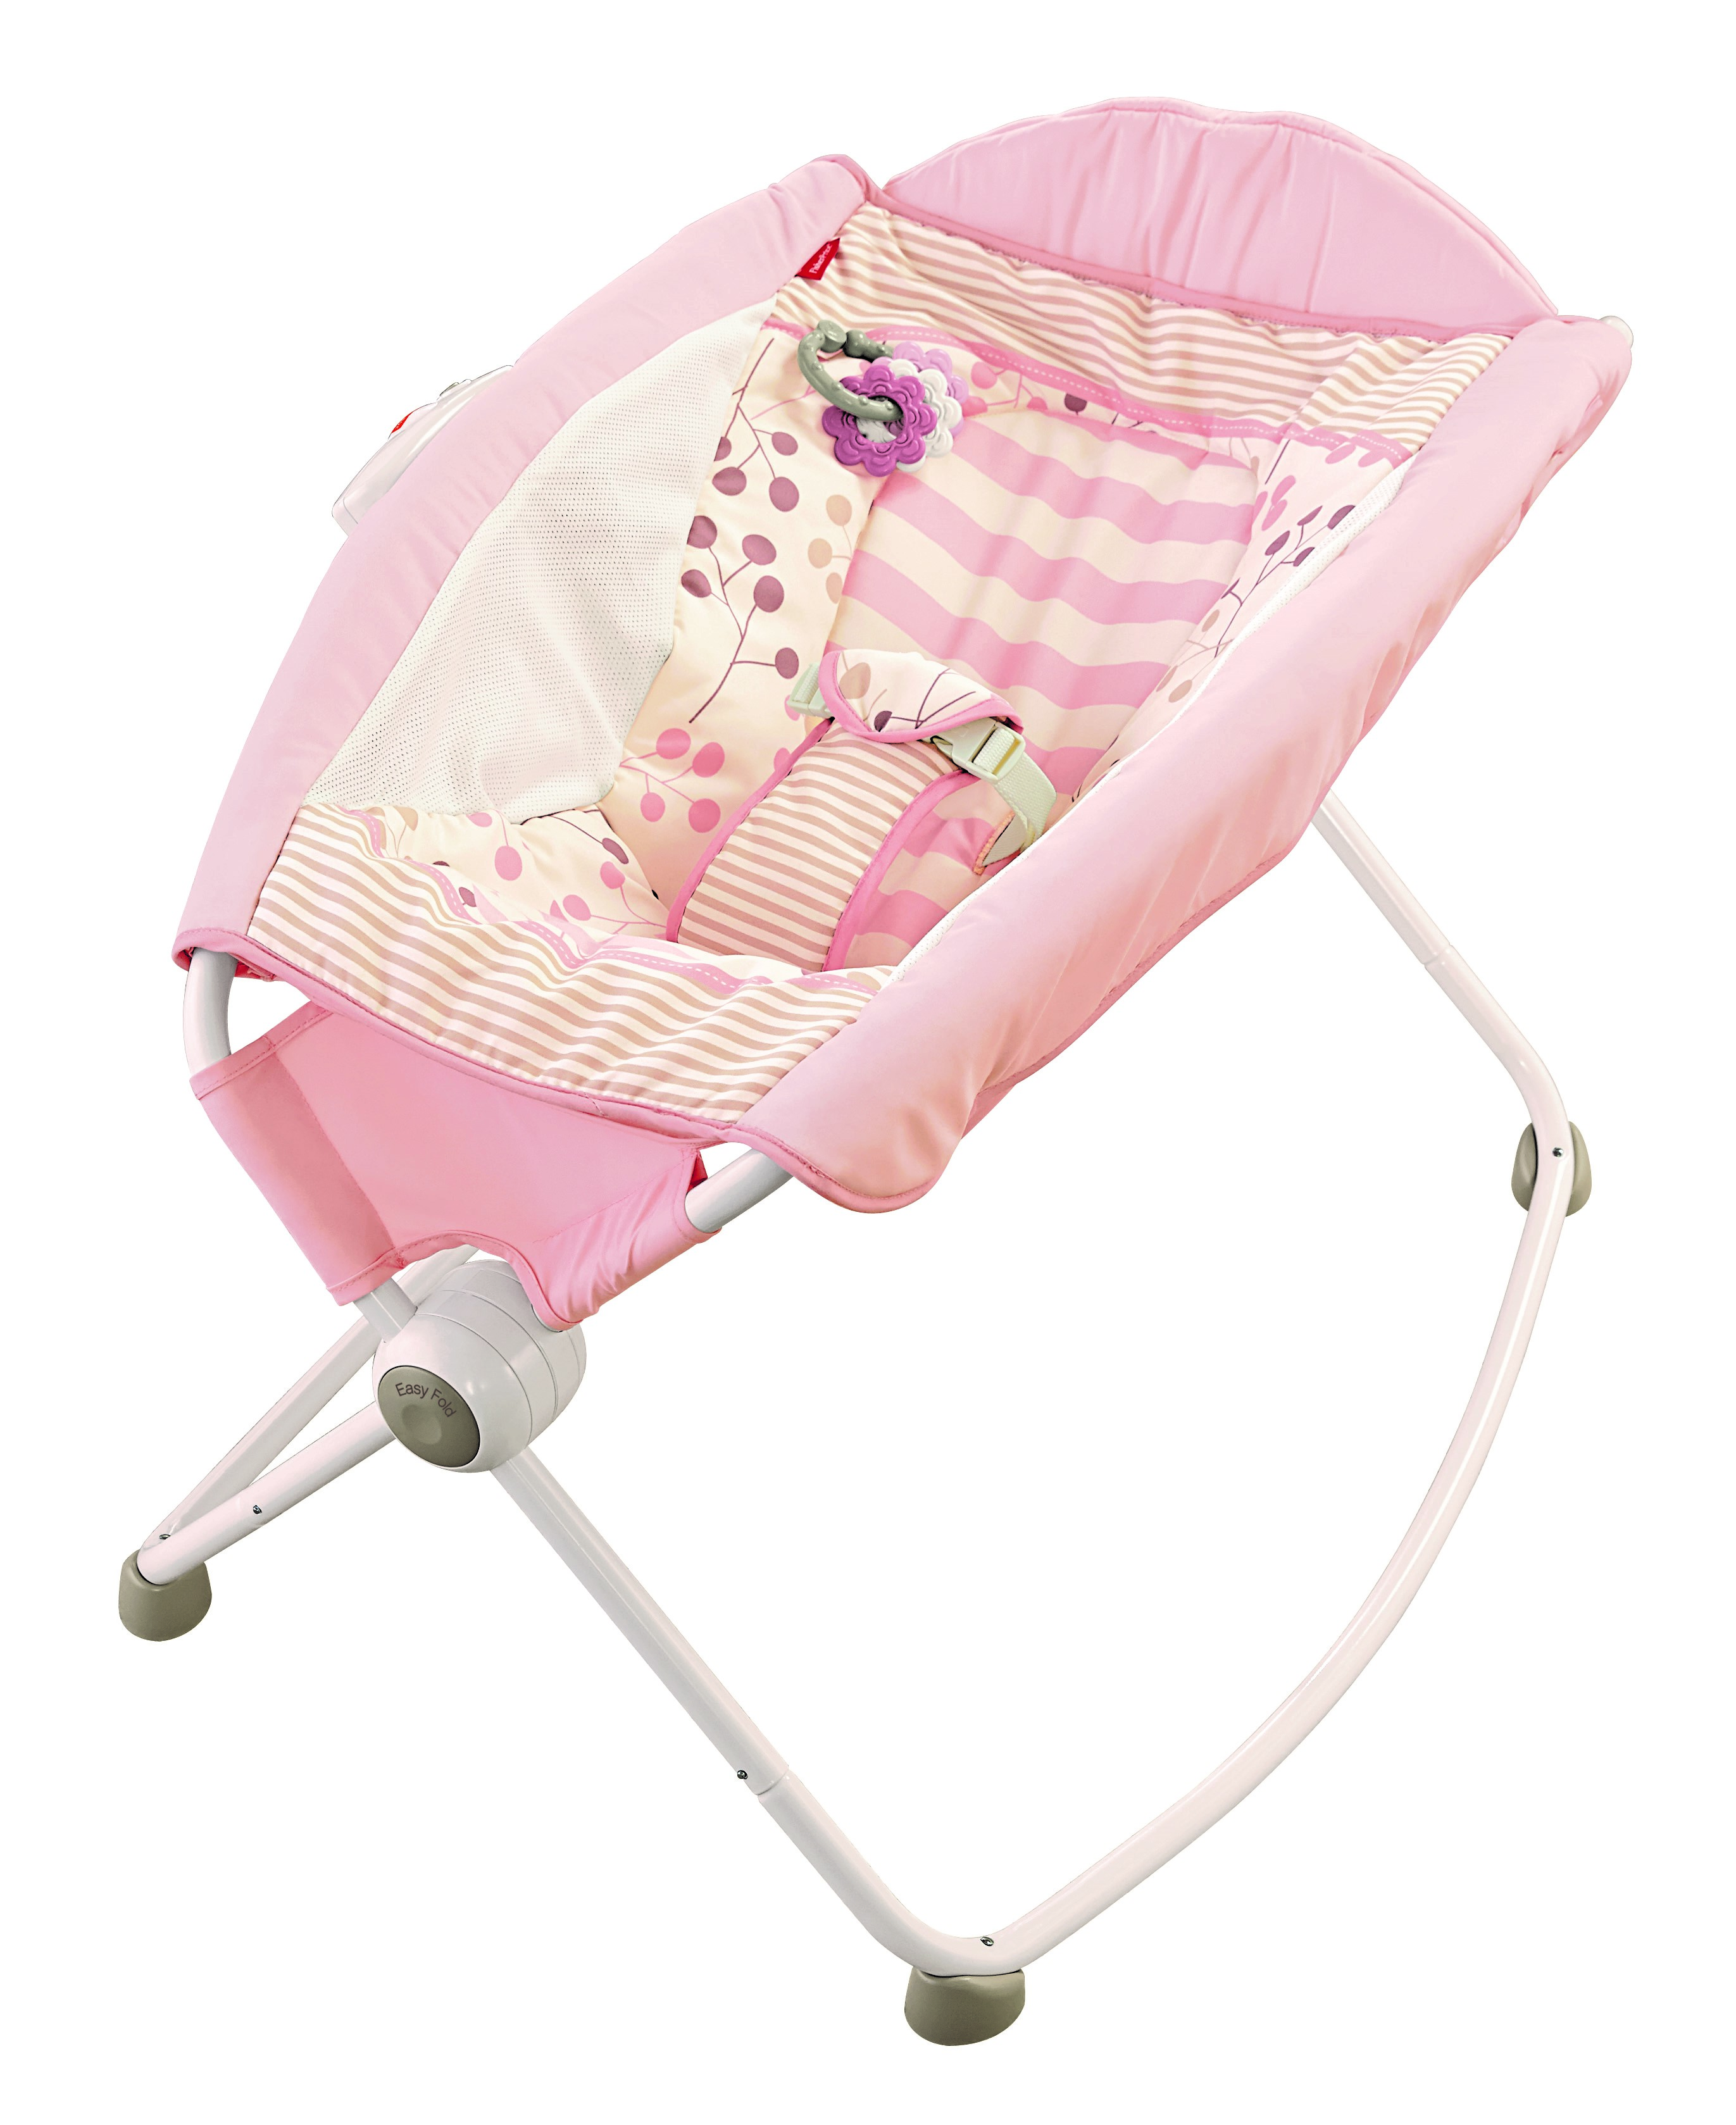 Fisher-Price Rock 'n Play Sleepers | 4 7 Million Recalled